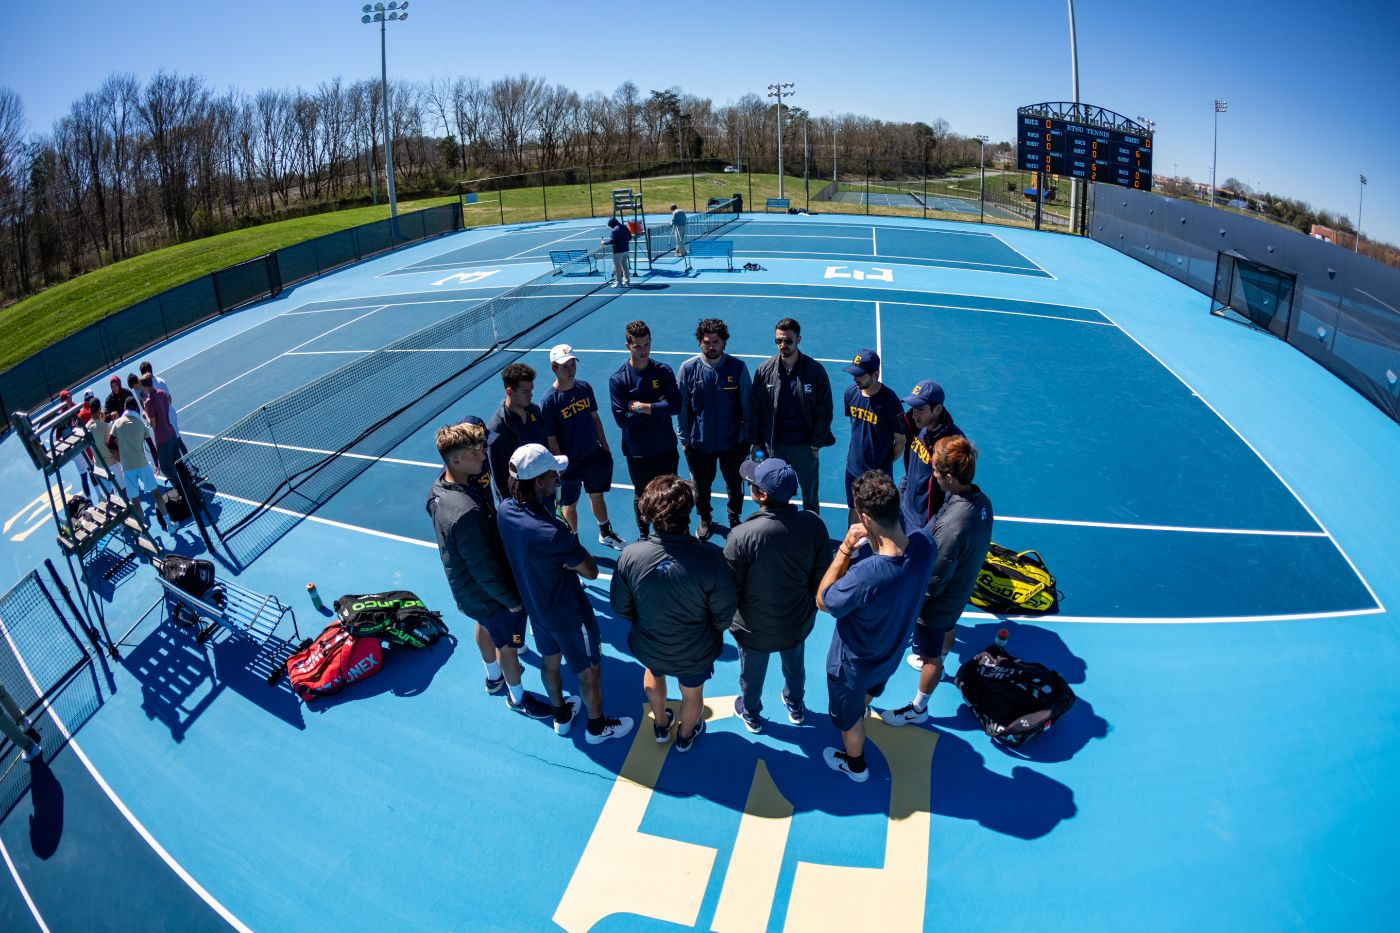 Bucs Conclude Play at ITA Regionals